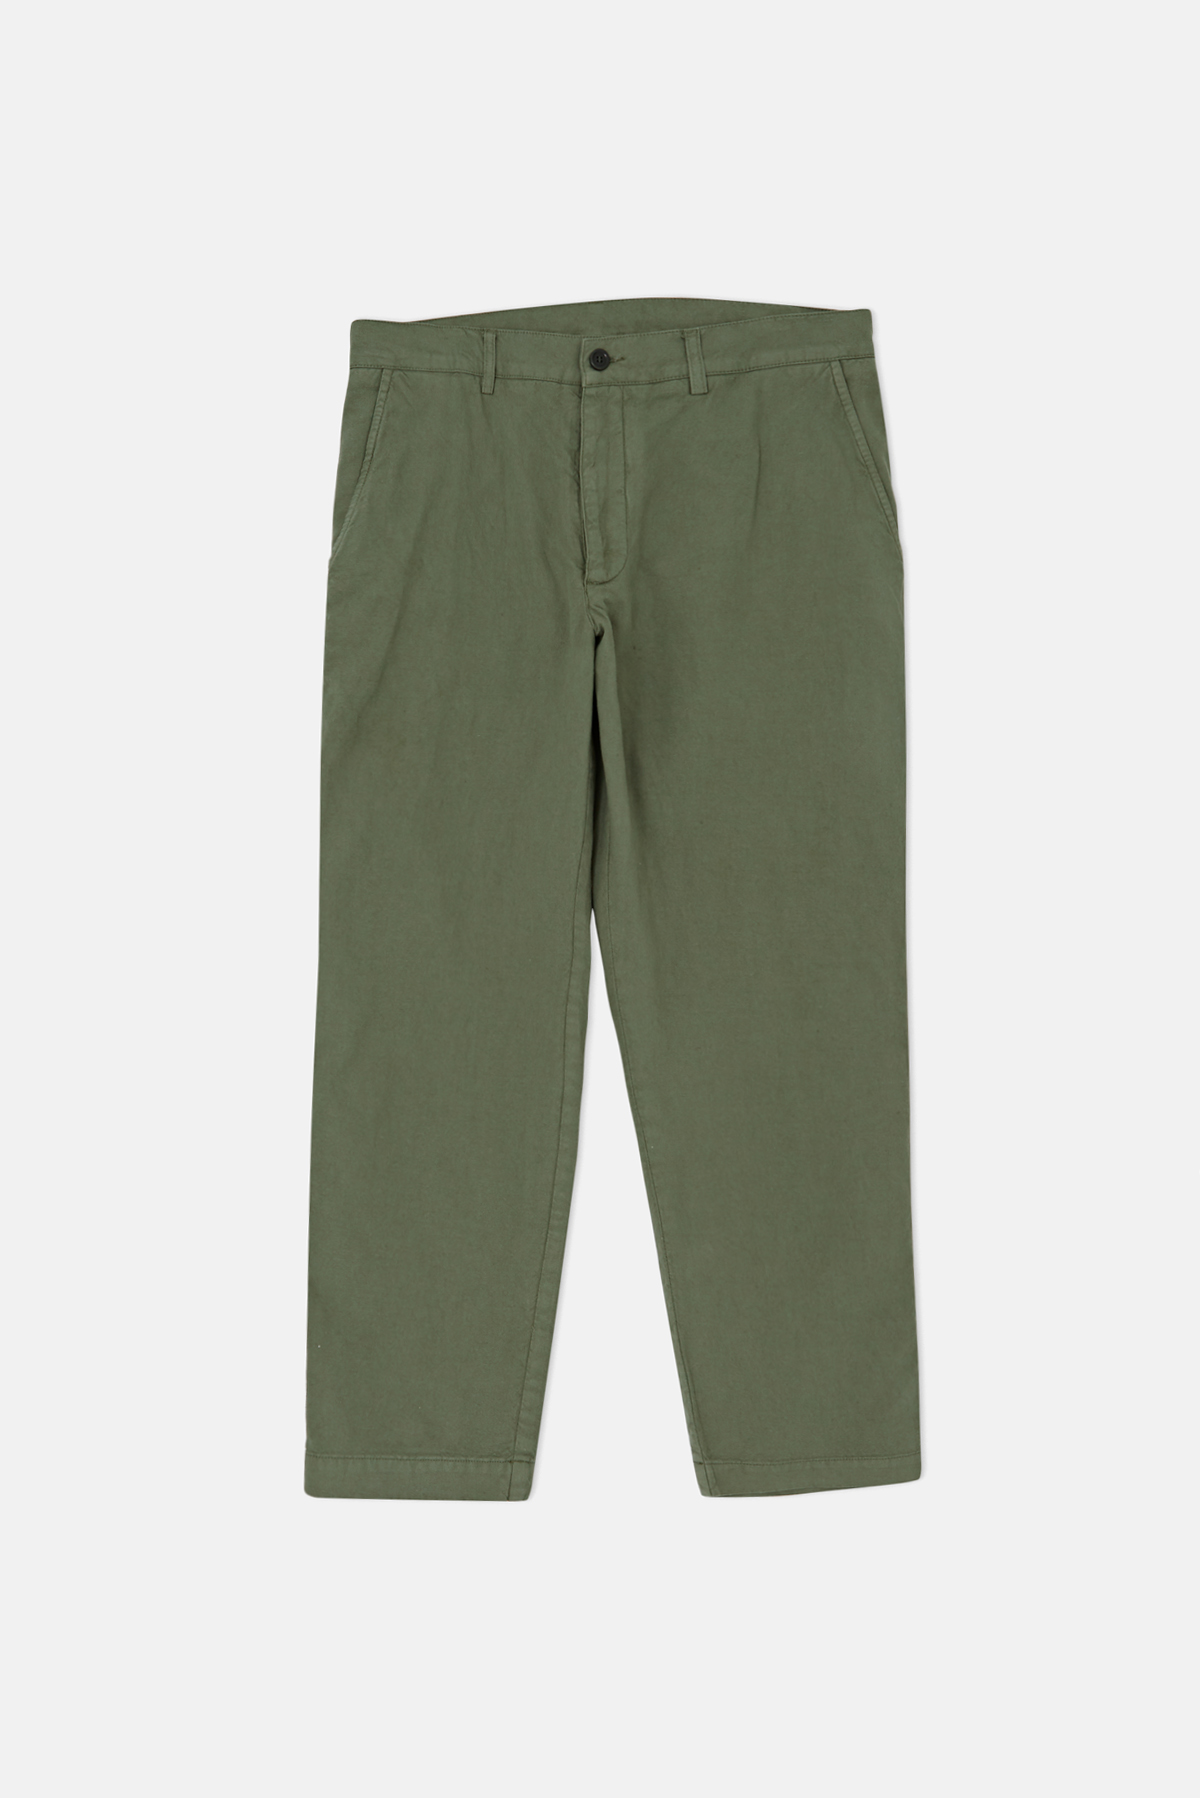 Trousers available from Priory